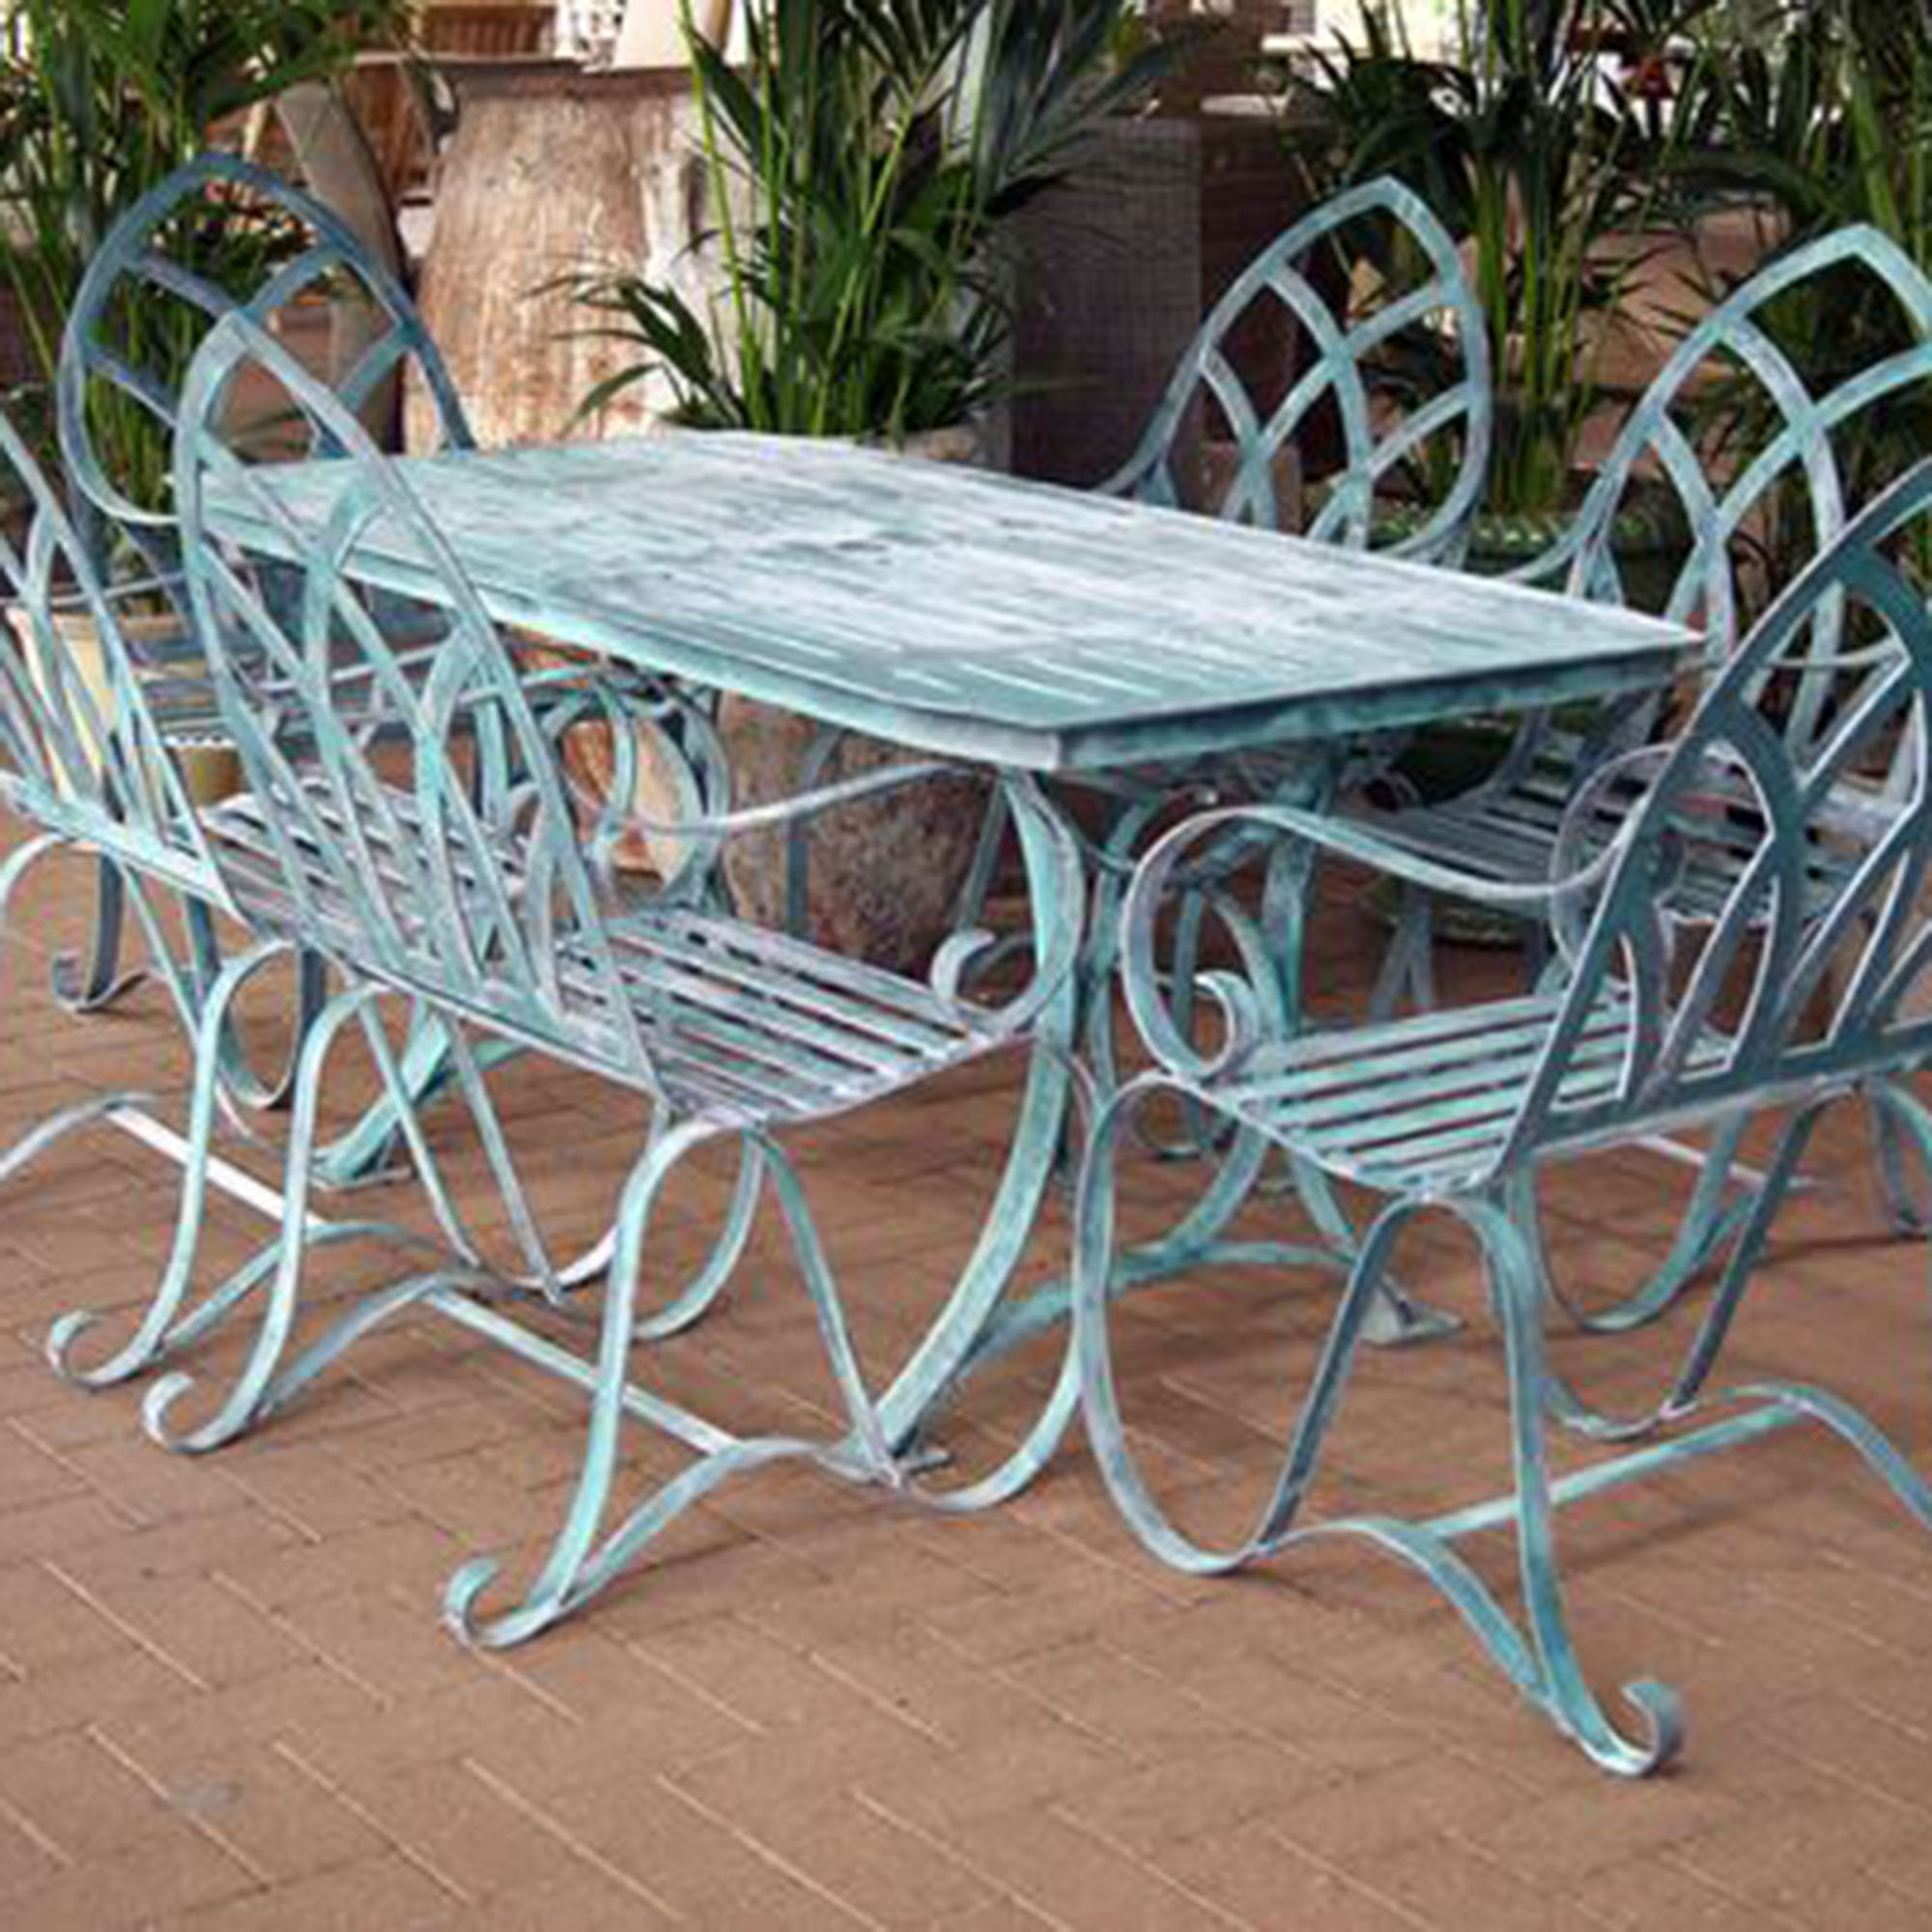 Why you should buy cast aluminum garden furniture?